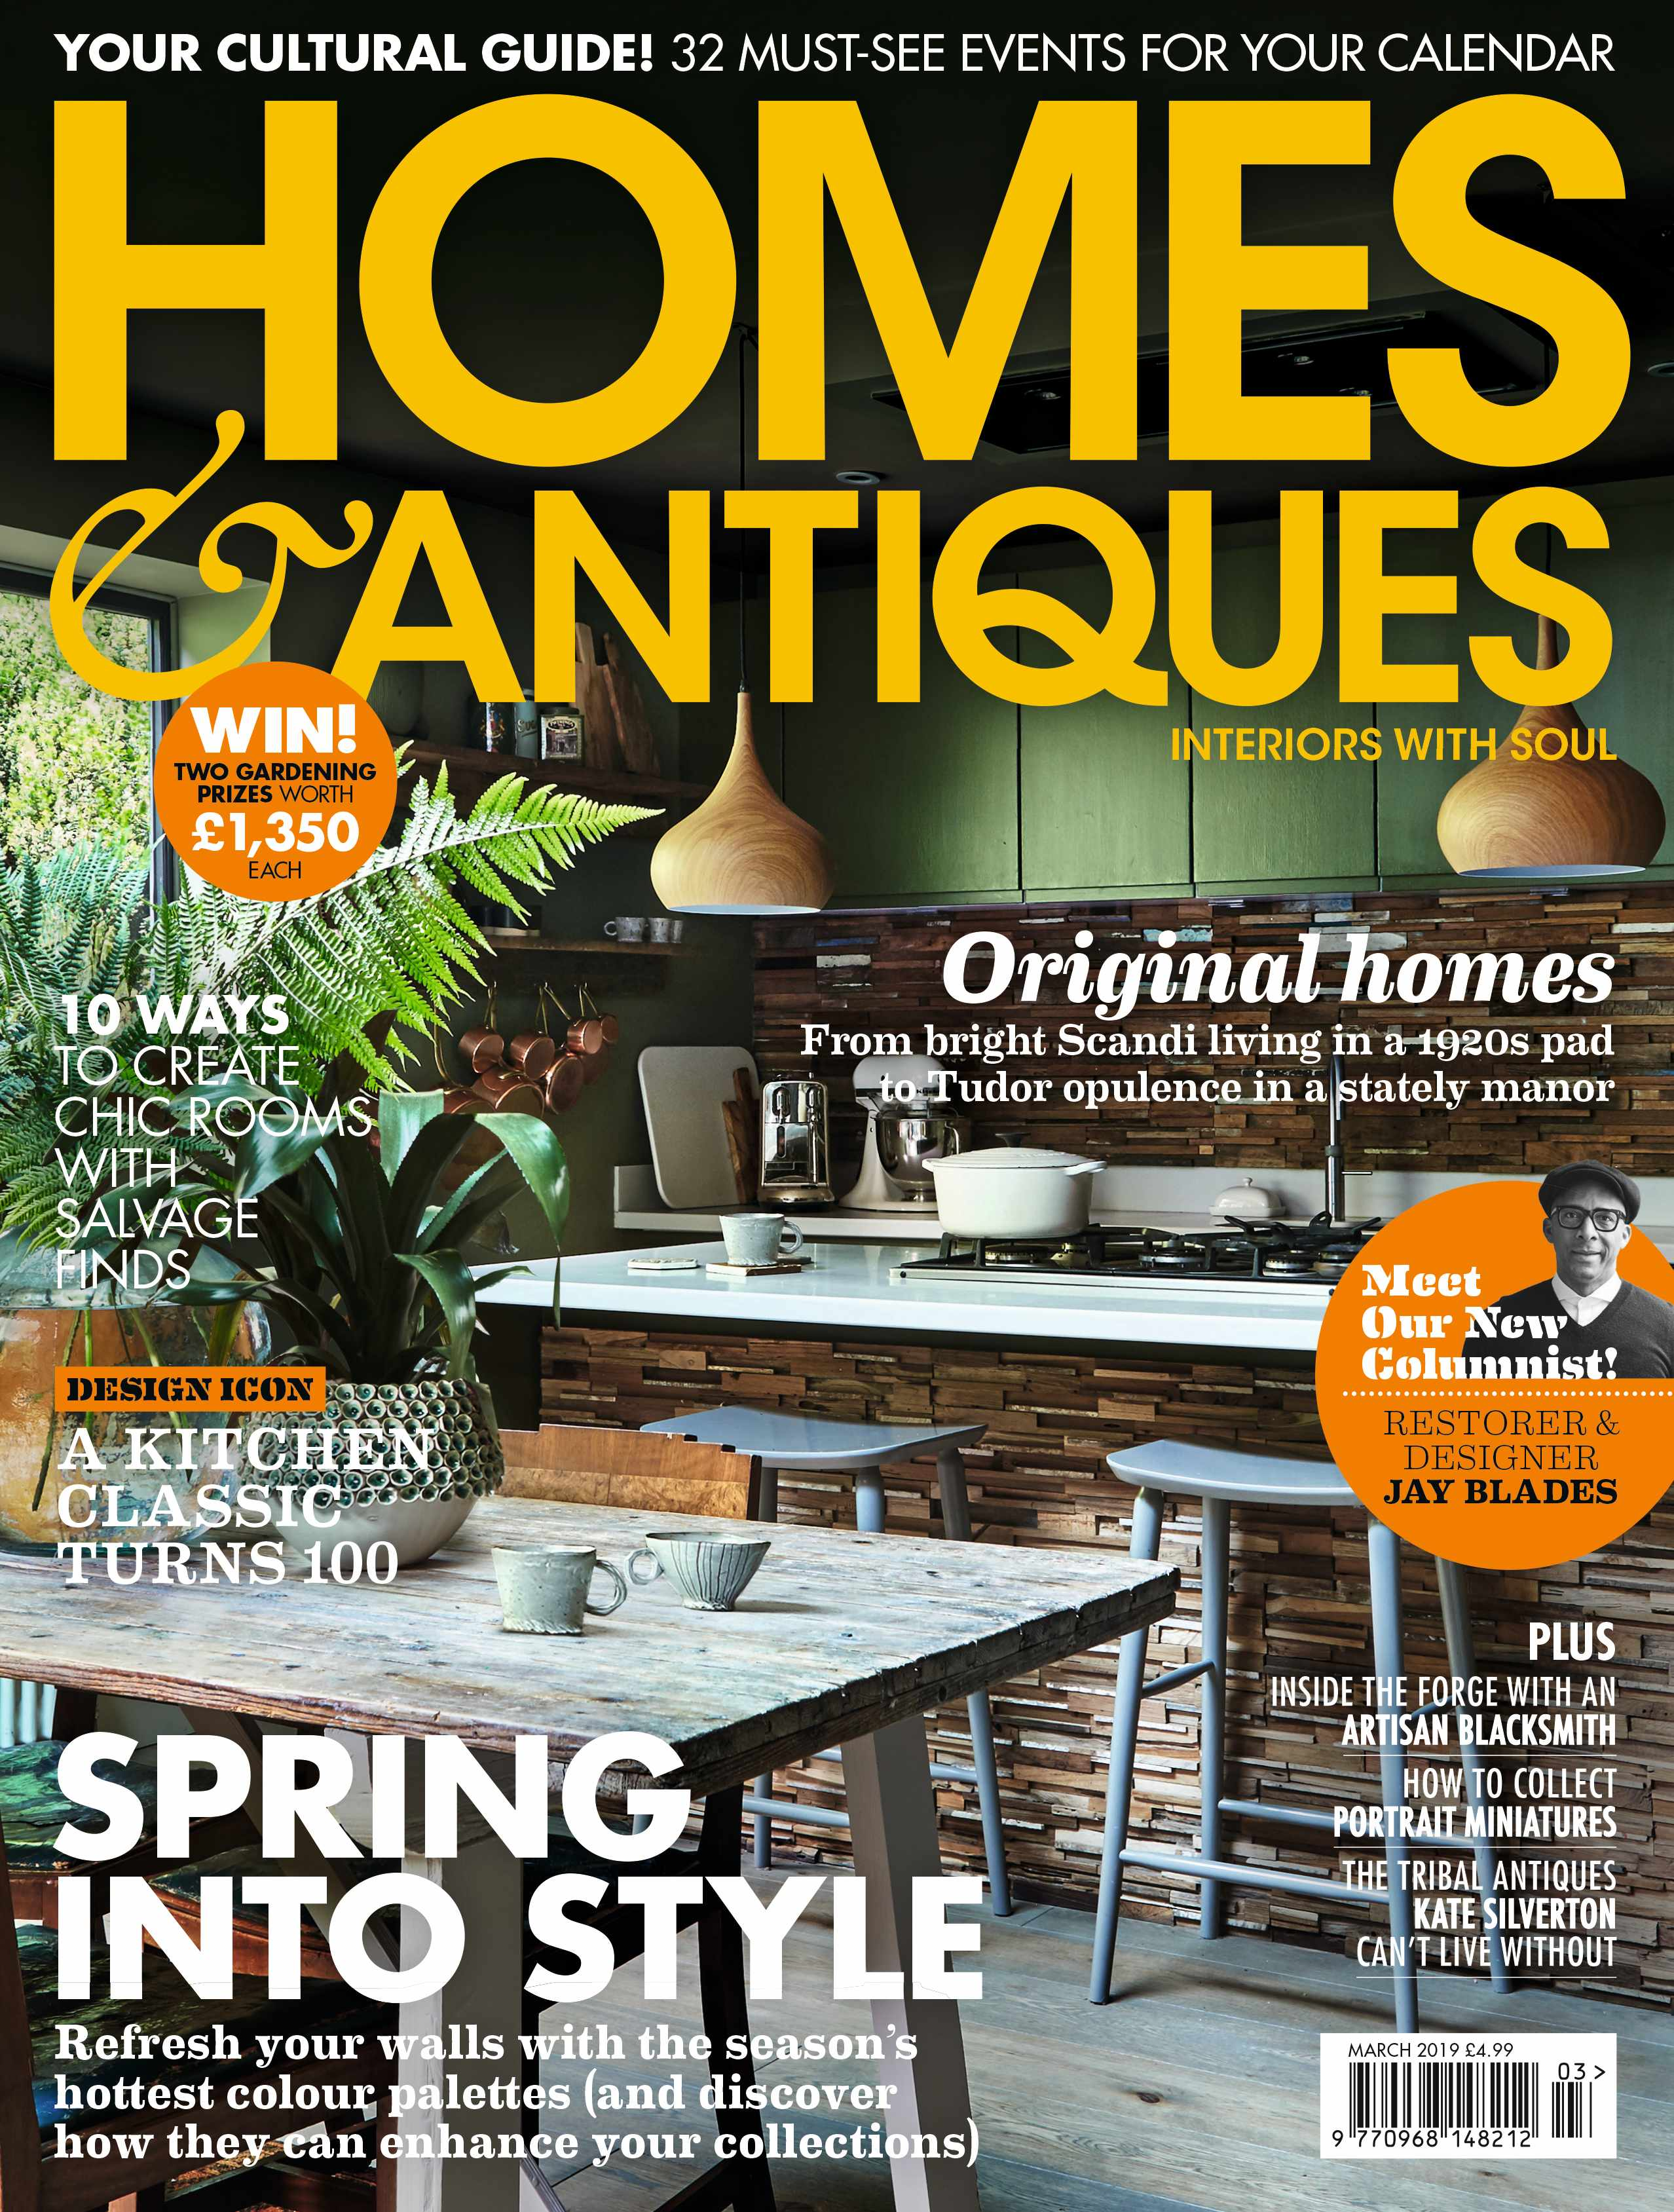 Homes & Antiques magazine March 2019 cover featuring a green kitchen, a KitchenAid, Le Creuset casserole dish and a rustic dining room table